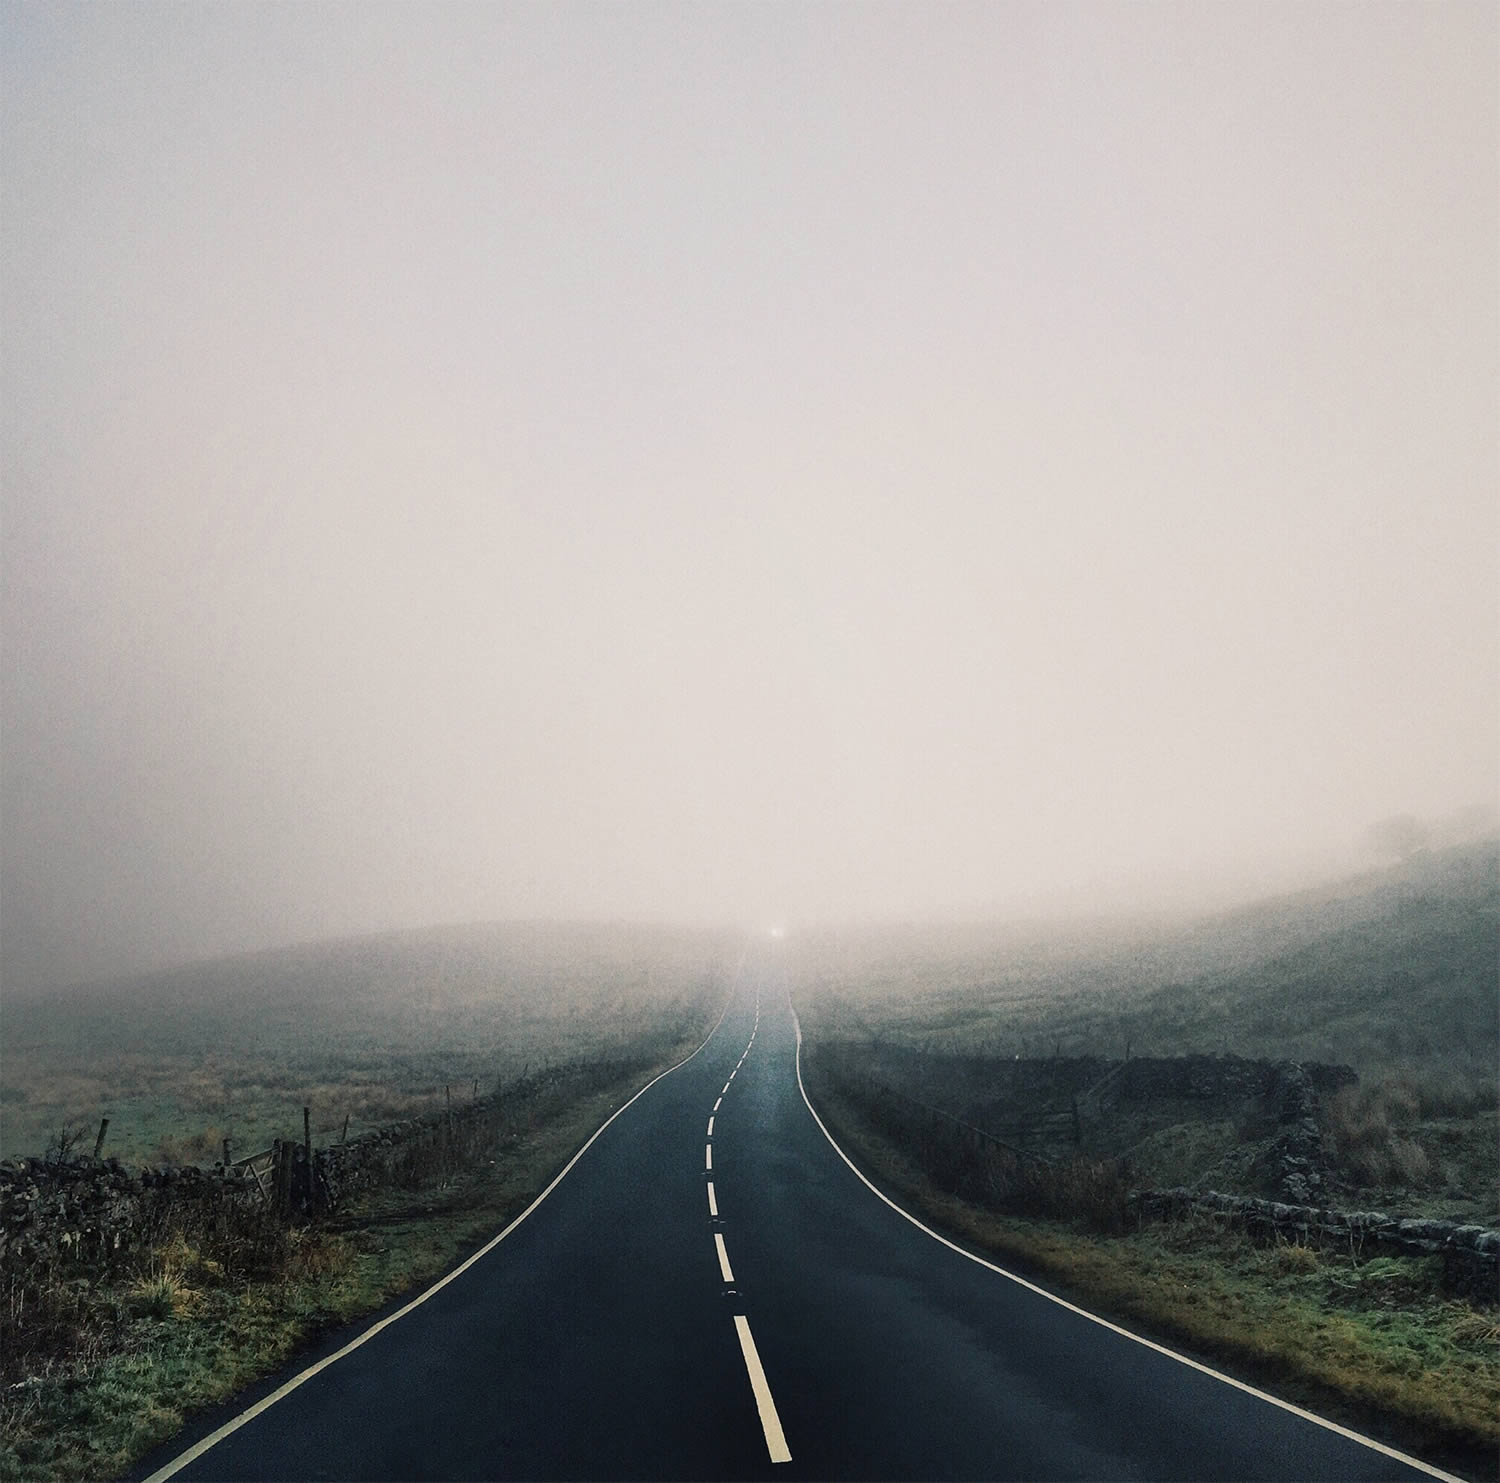 isolated road, photo by Reuben Wu